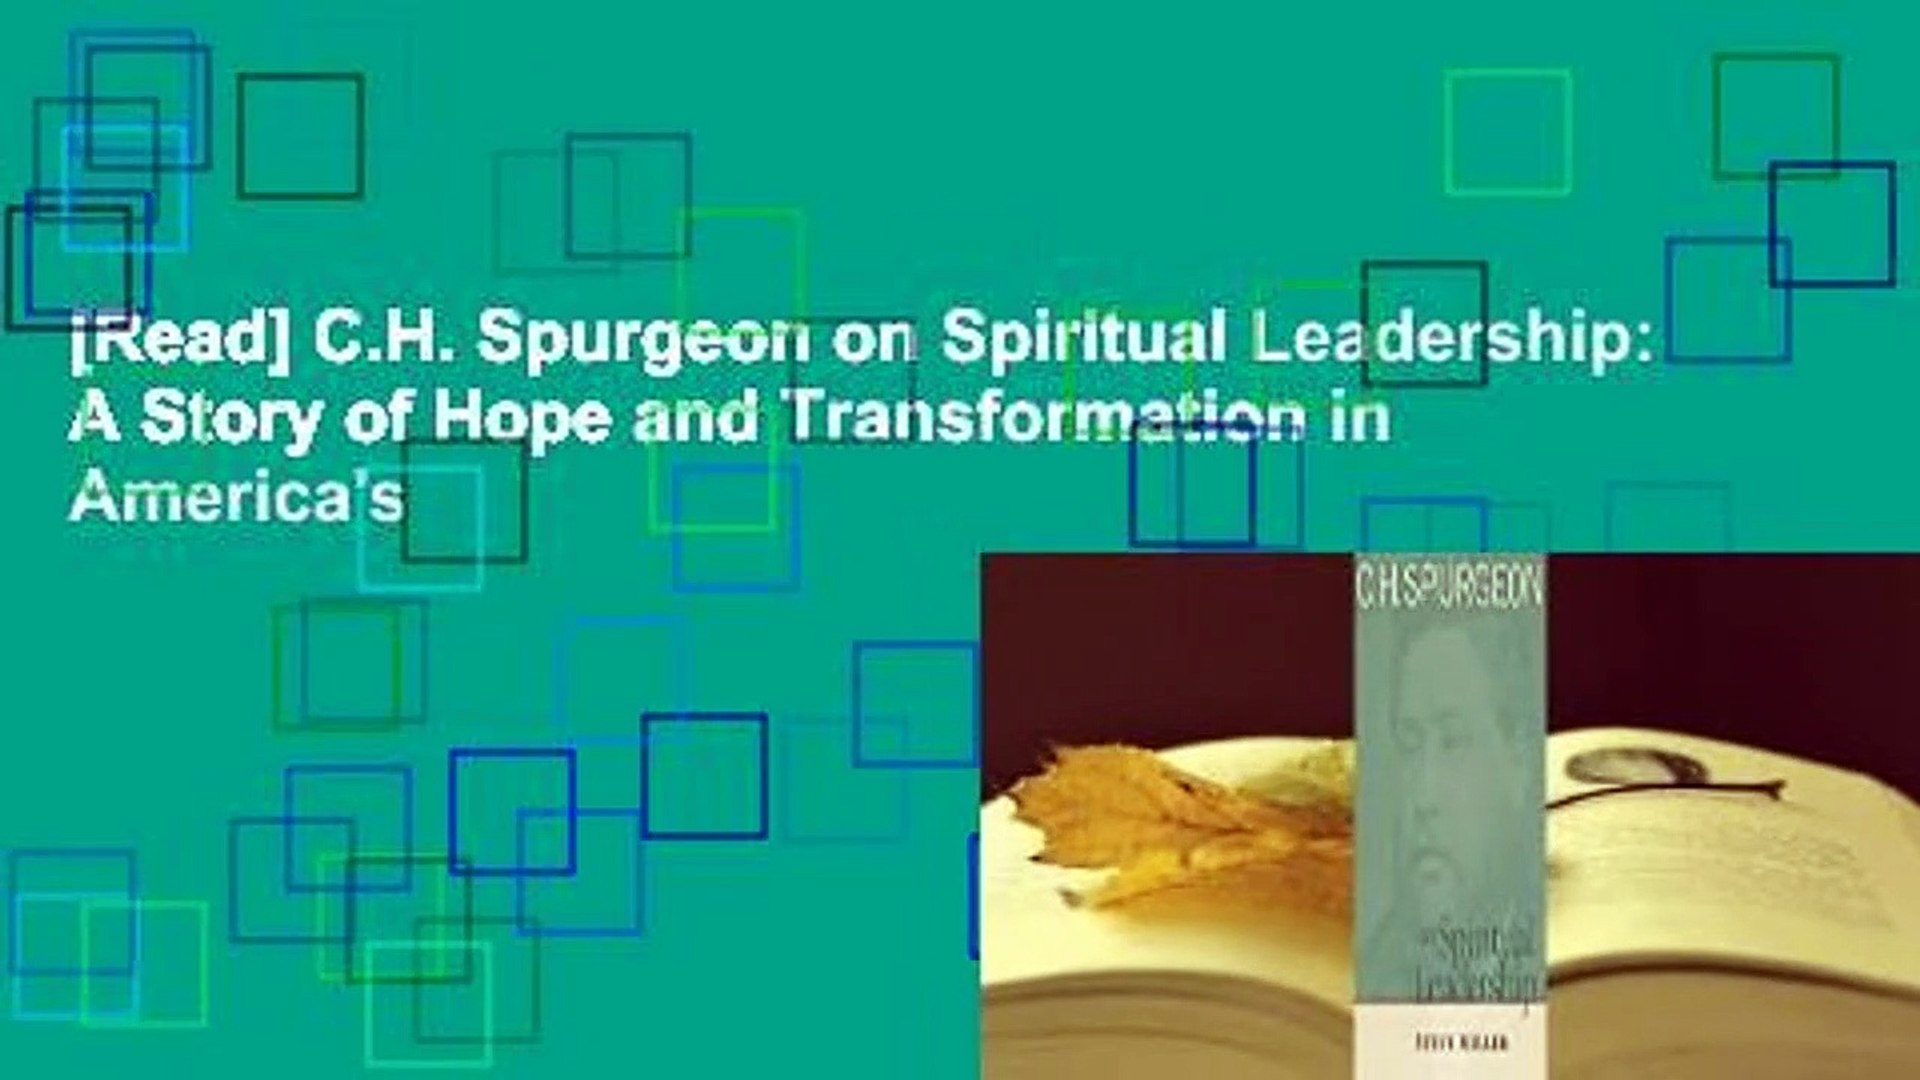 [Read] C.H. Spurgeon on Spiritual Leadership: A Story of Hope and Transformation in America's